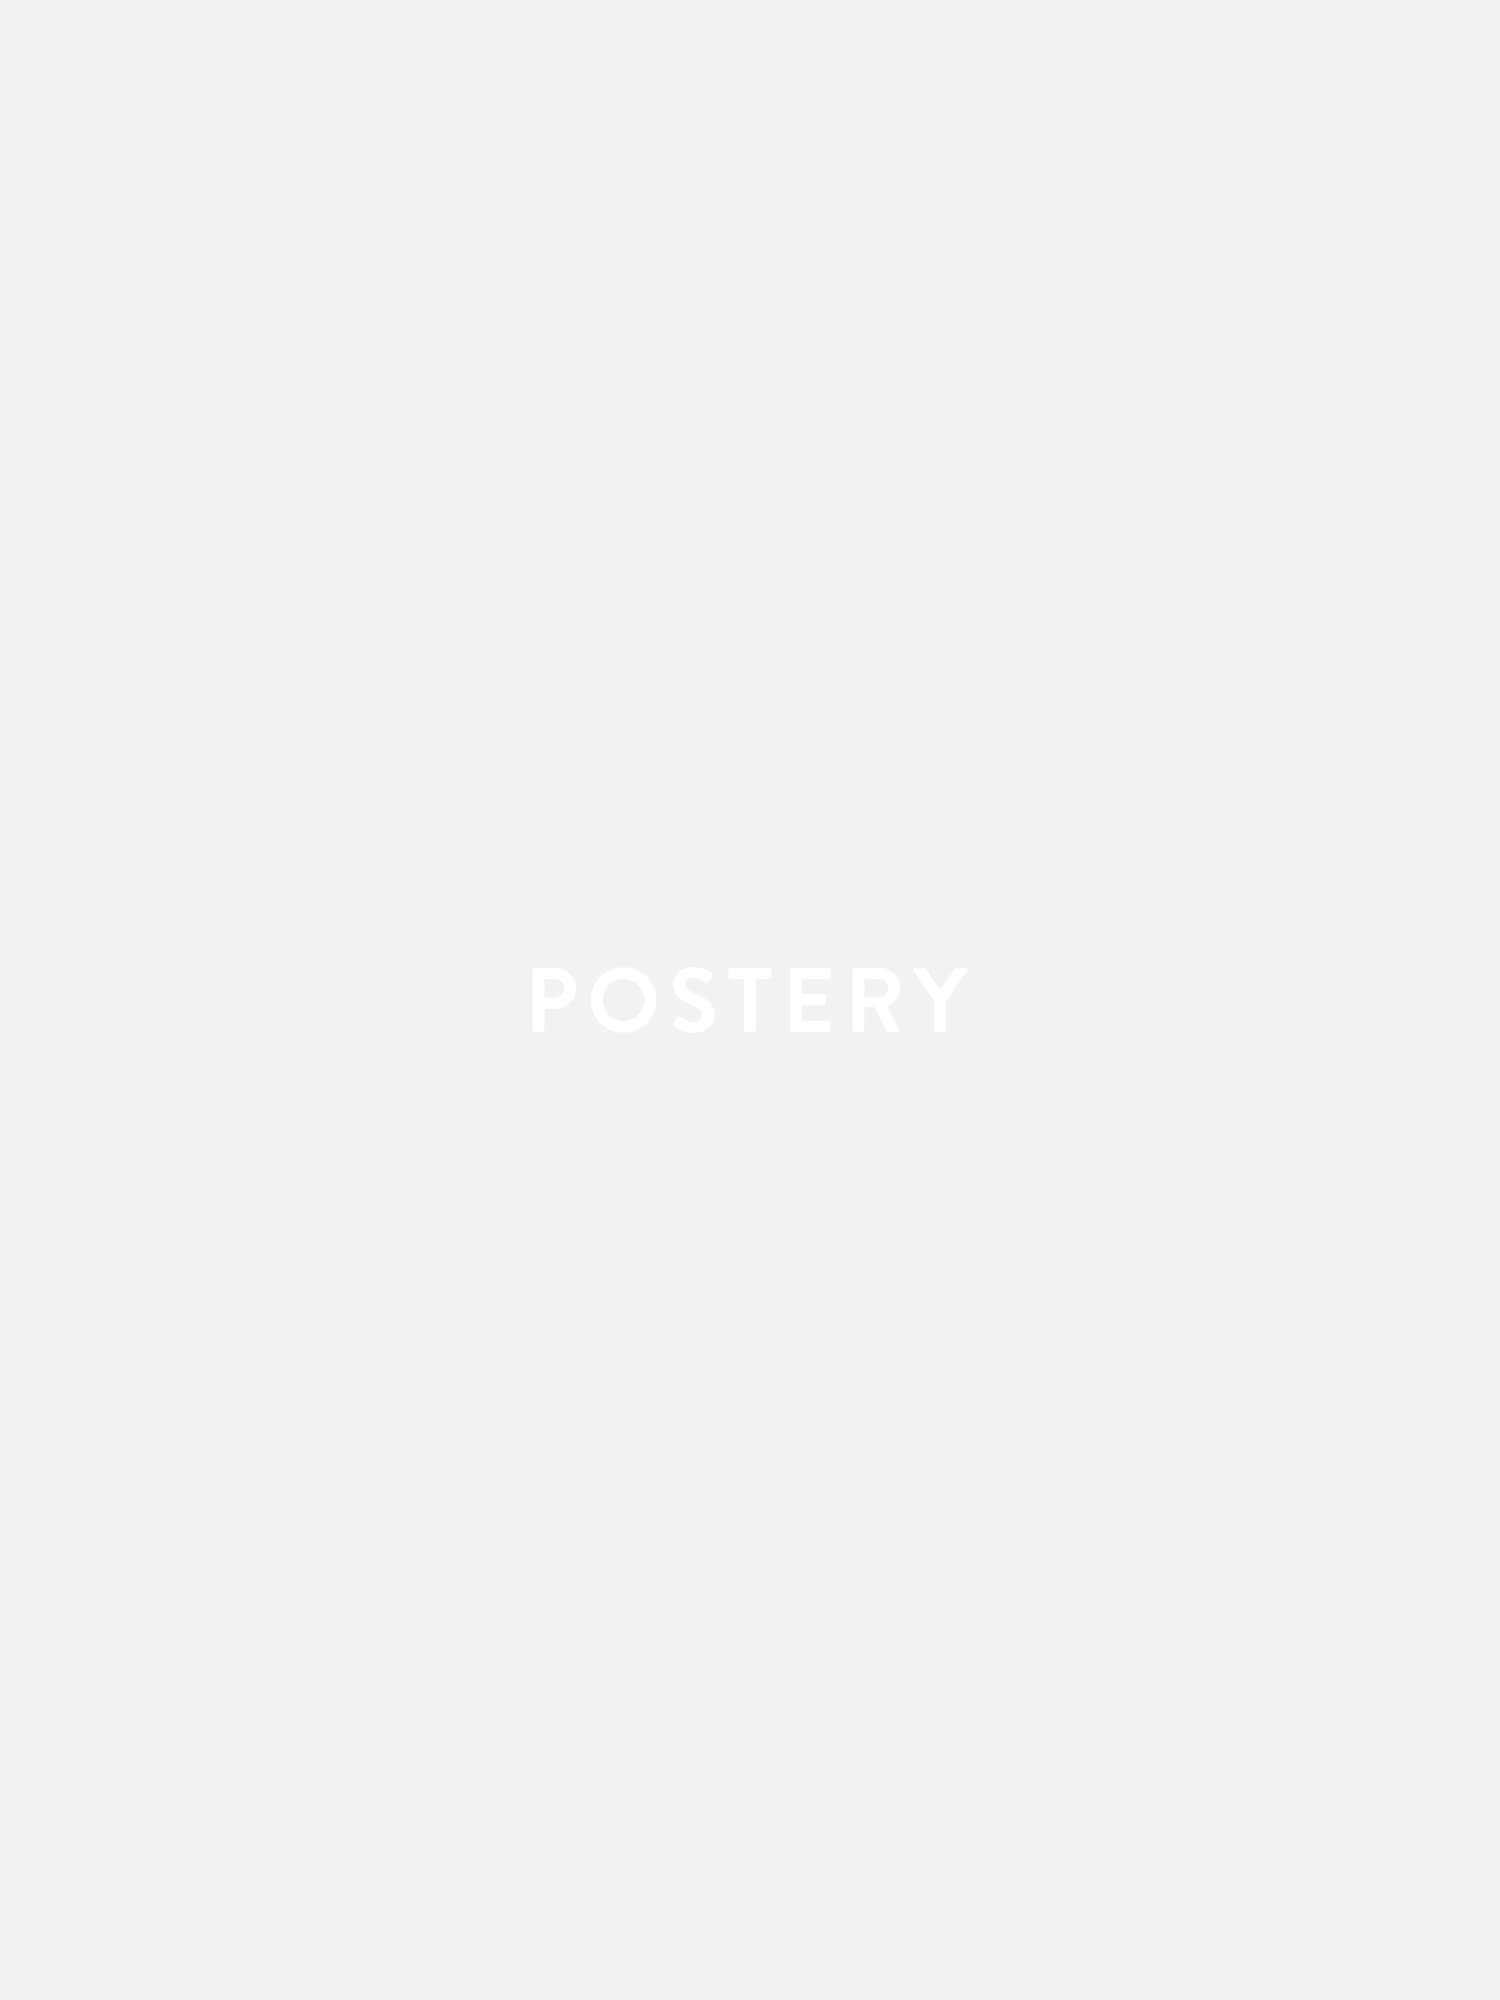 Willow Bough by William Morris Poster